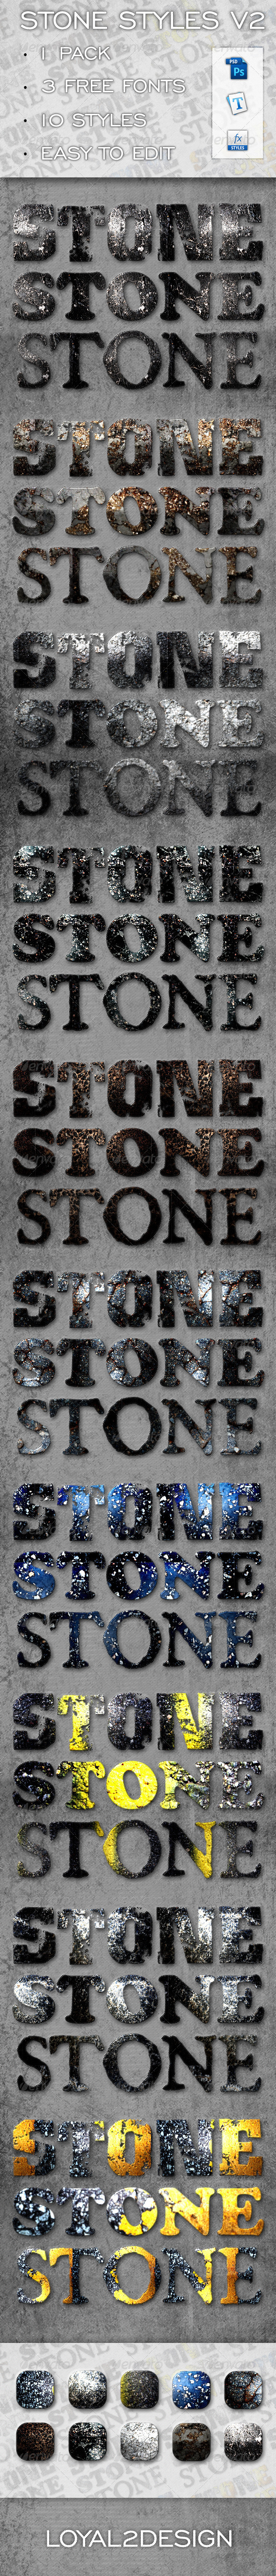 Stone Text Effects & Layer Styles - V2 - Text Effects Styles